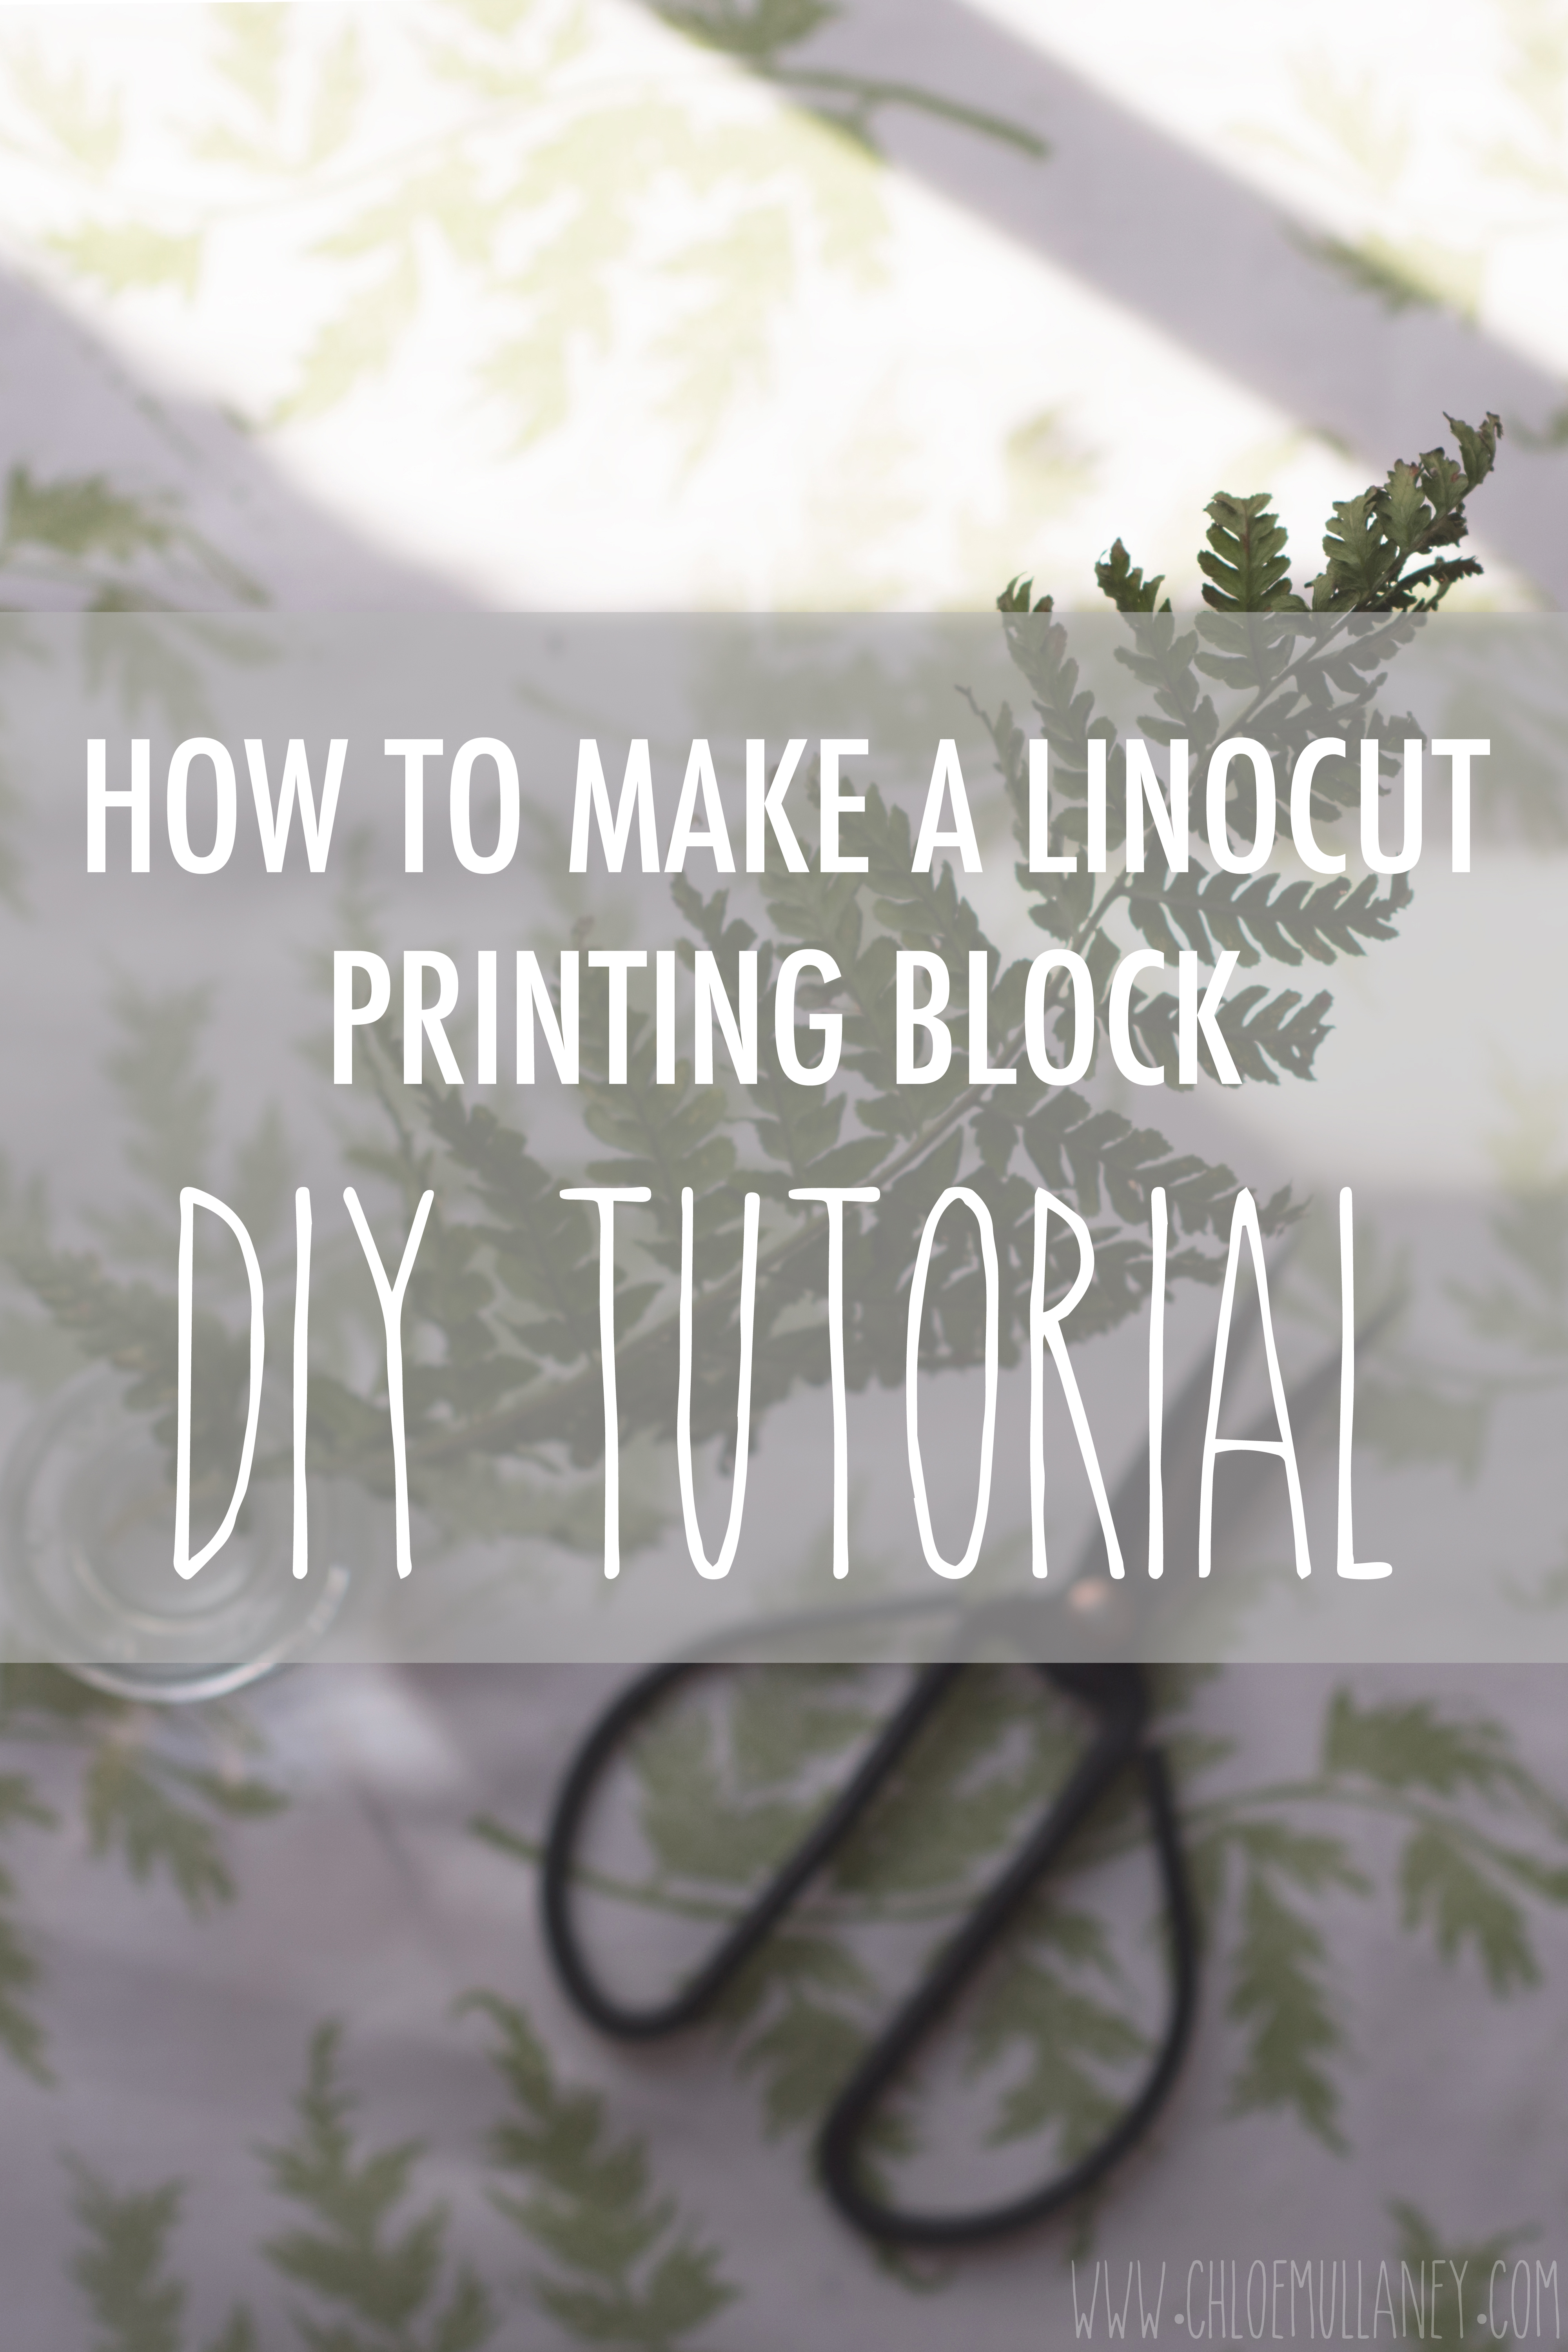 How-To-Make-A-Linocut-Printing-Block-DIY-Tutorial_edited-1